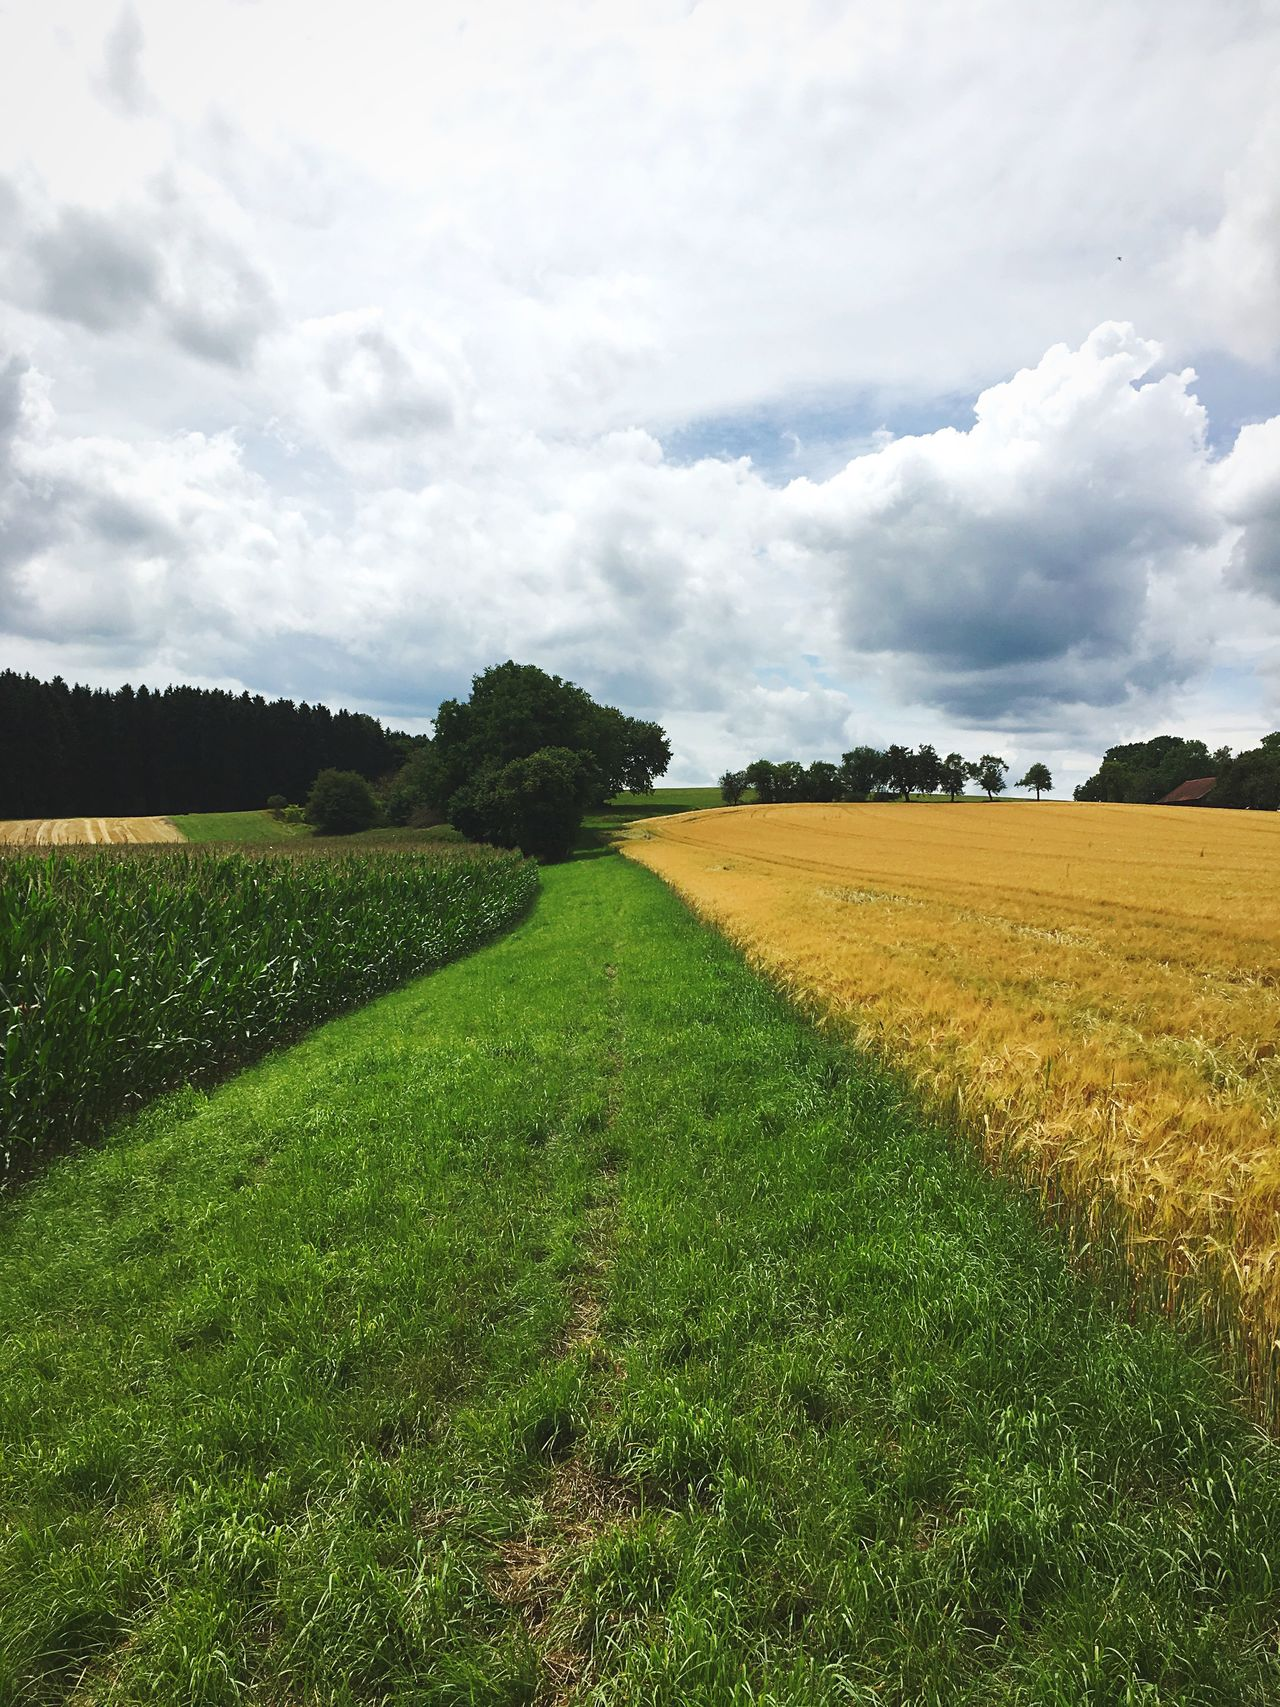 Field Agriculture Landscape Nature Tranquility Growth Tranquil Scene Rural Scene Beauty In Nature Crop  Sky Cloud - Sky Day Scenics No People Green Color Outdoors Grass Tree